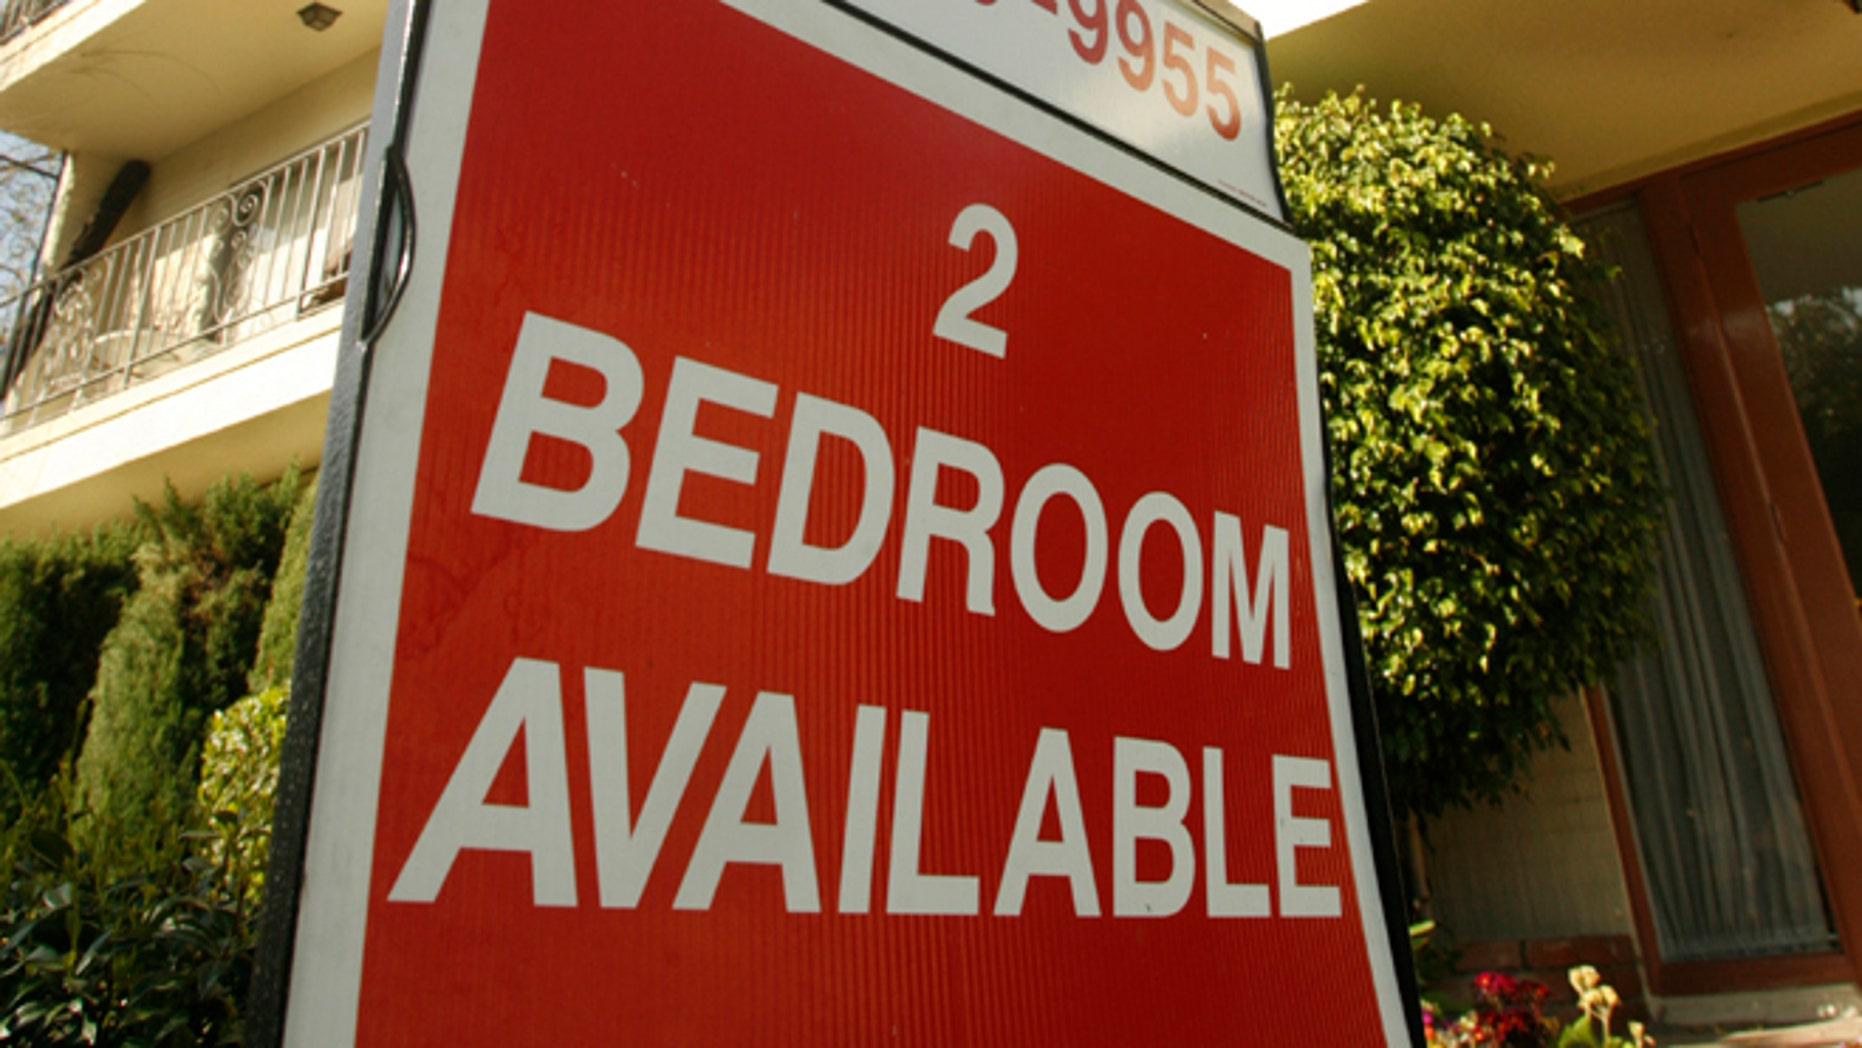 This file photo shows a sign at an apartment building in Los Angeles.